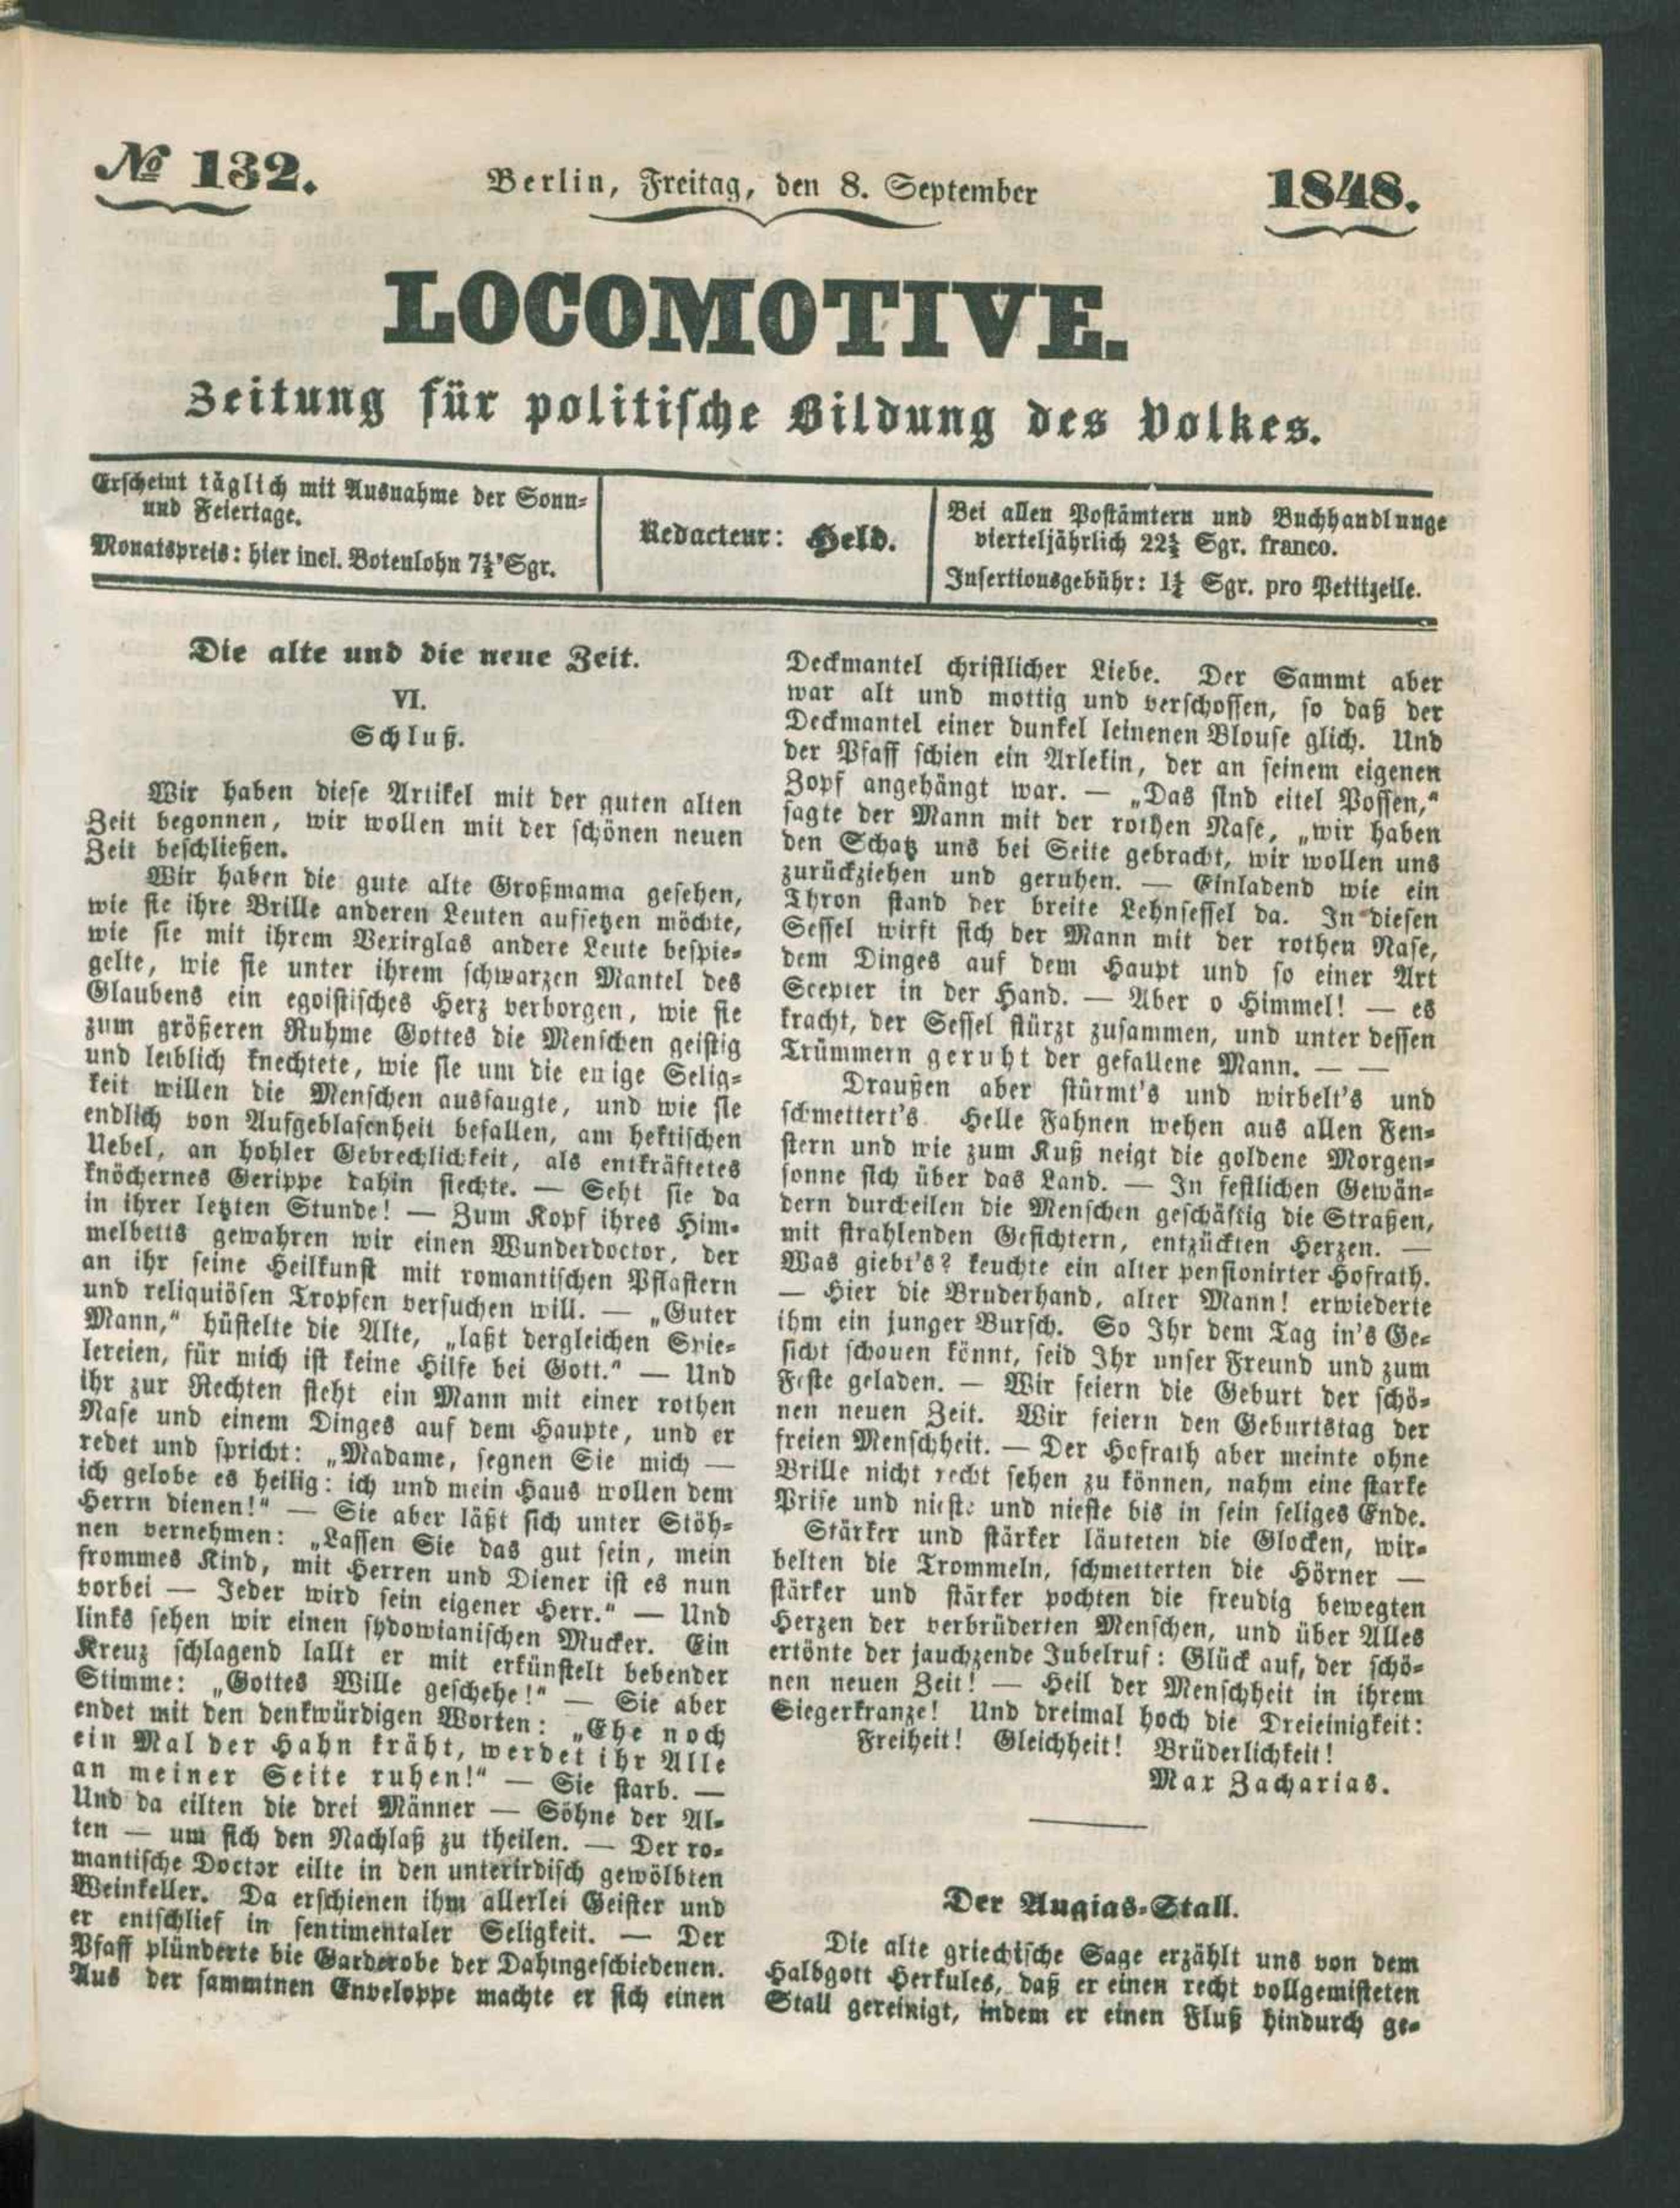 File:Locomotive- Newspaper for the Political Education of the People